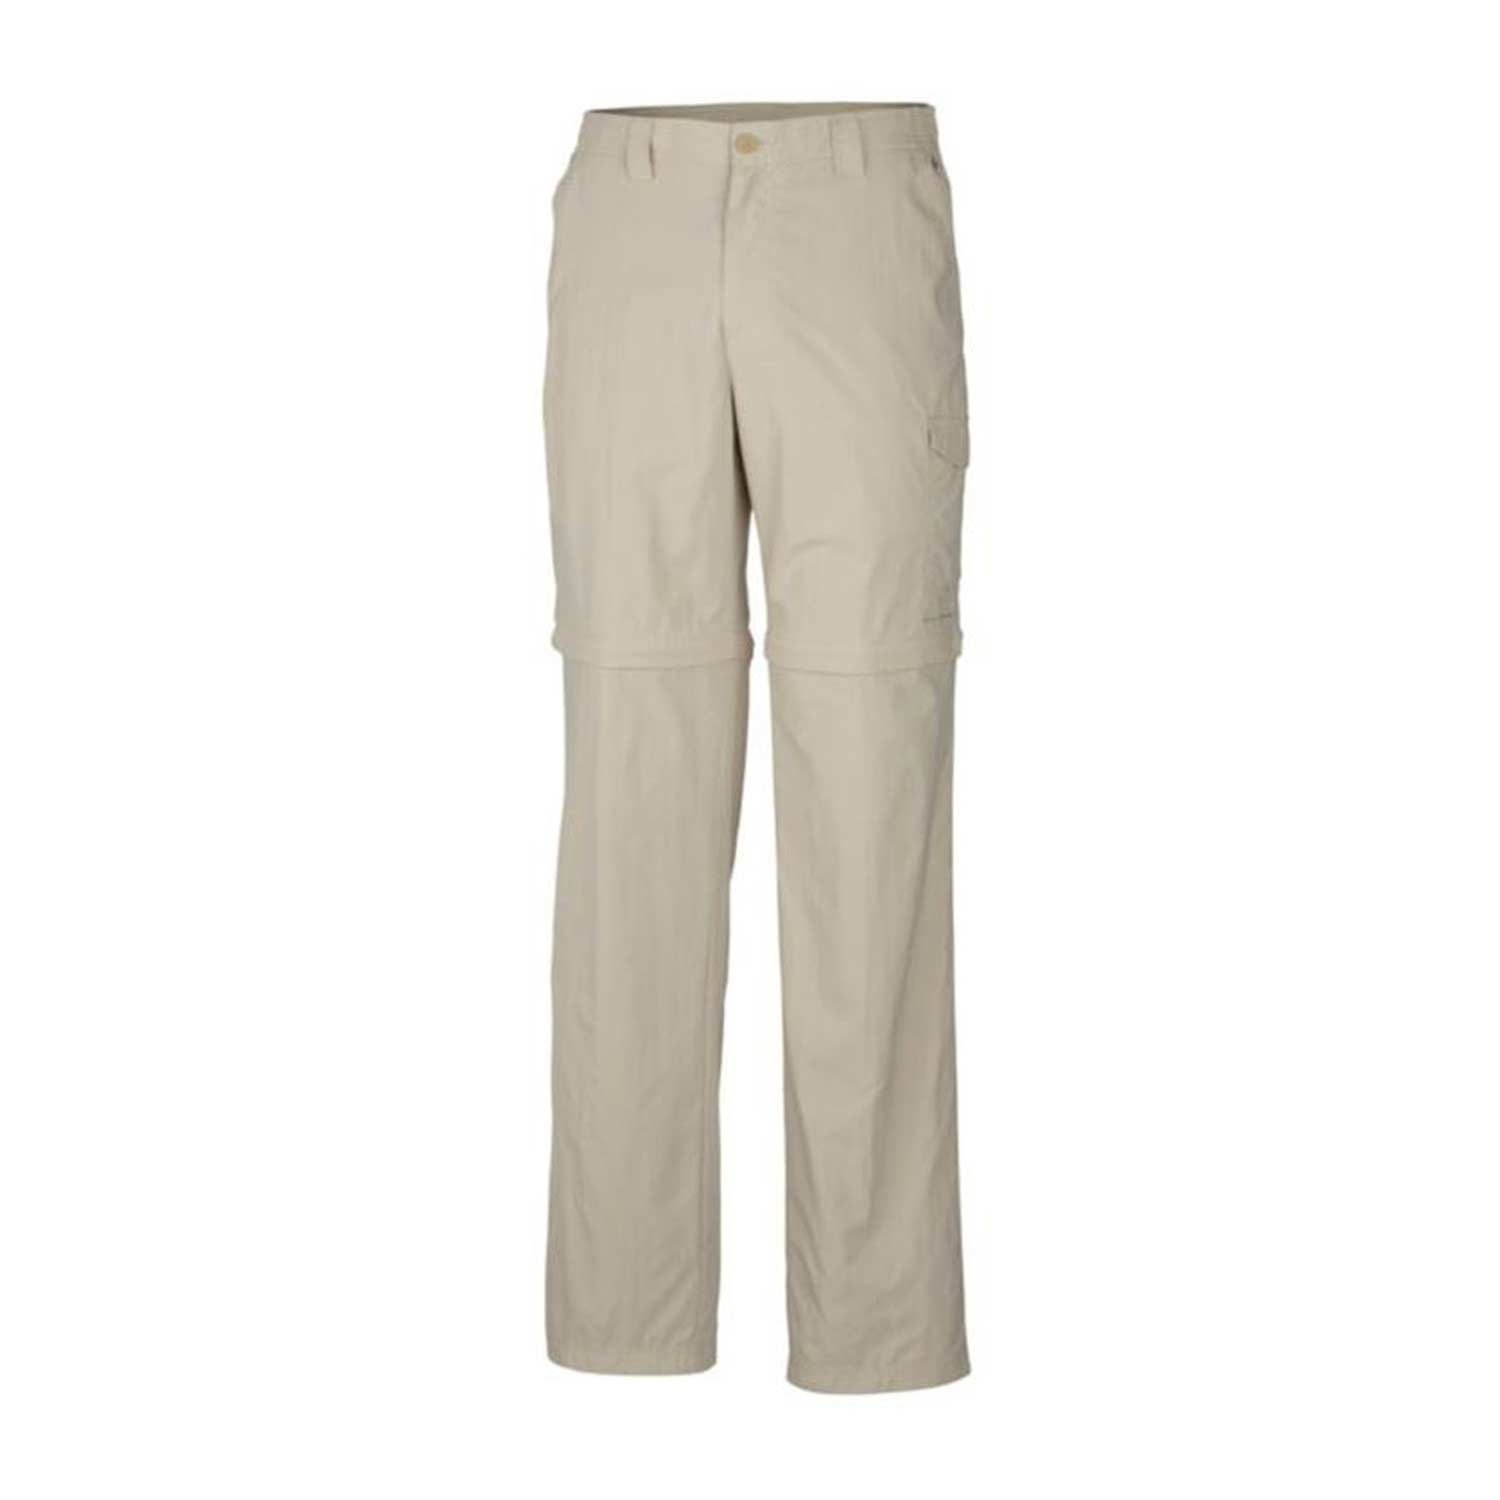 Columbia PFG Blood 'n Guts III Convertible Pant